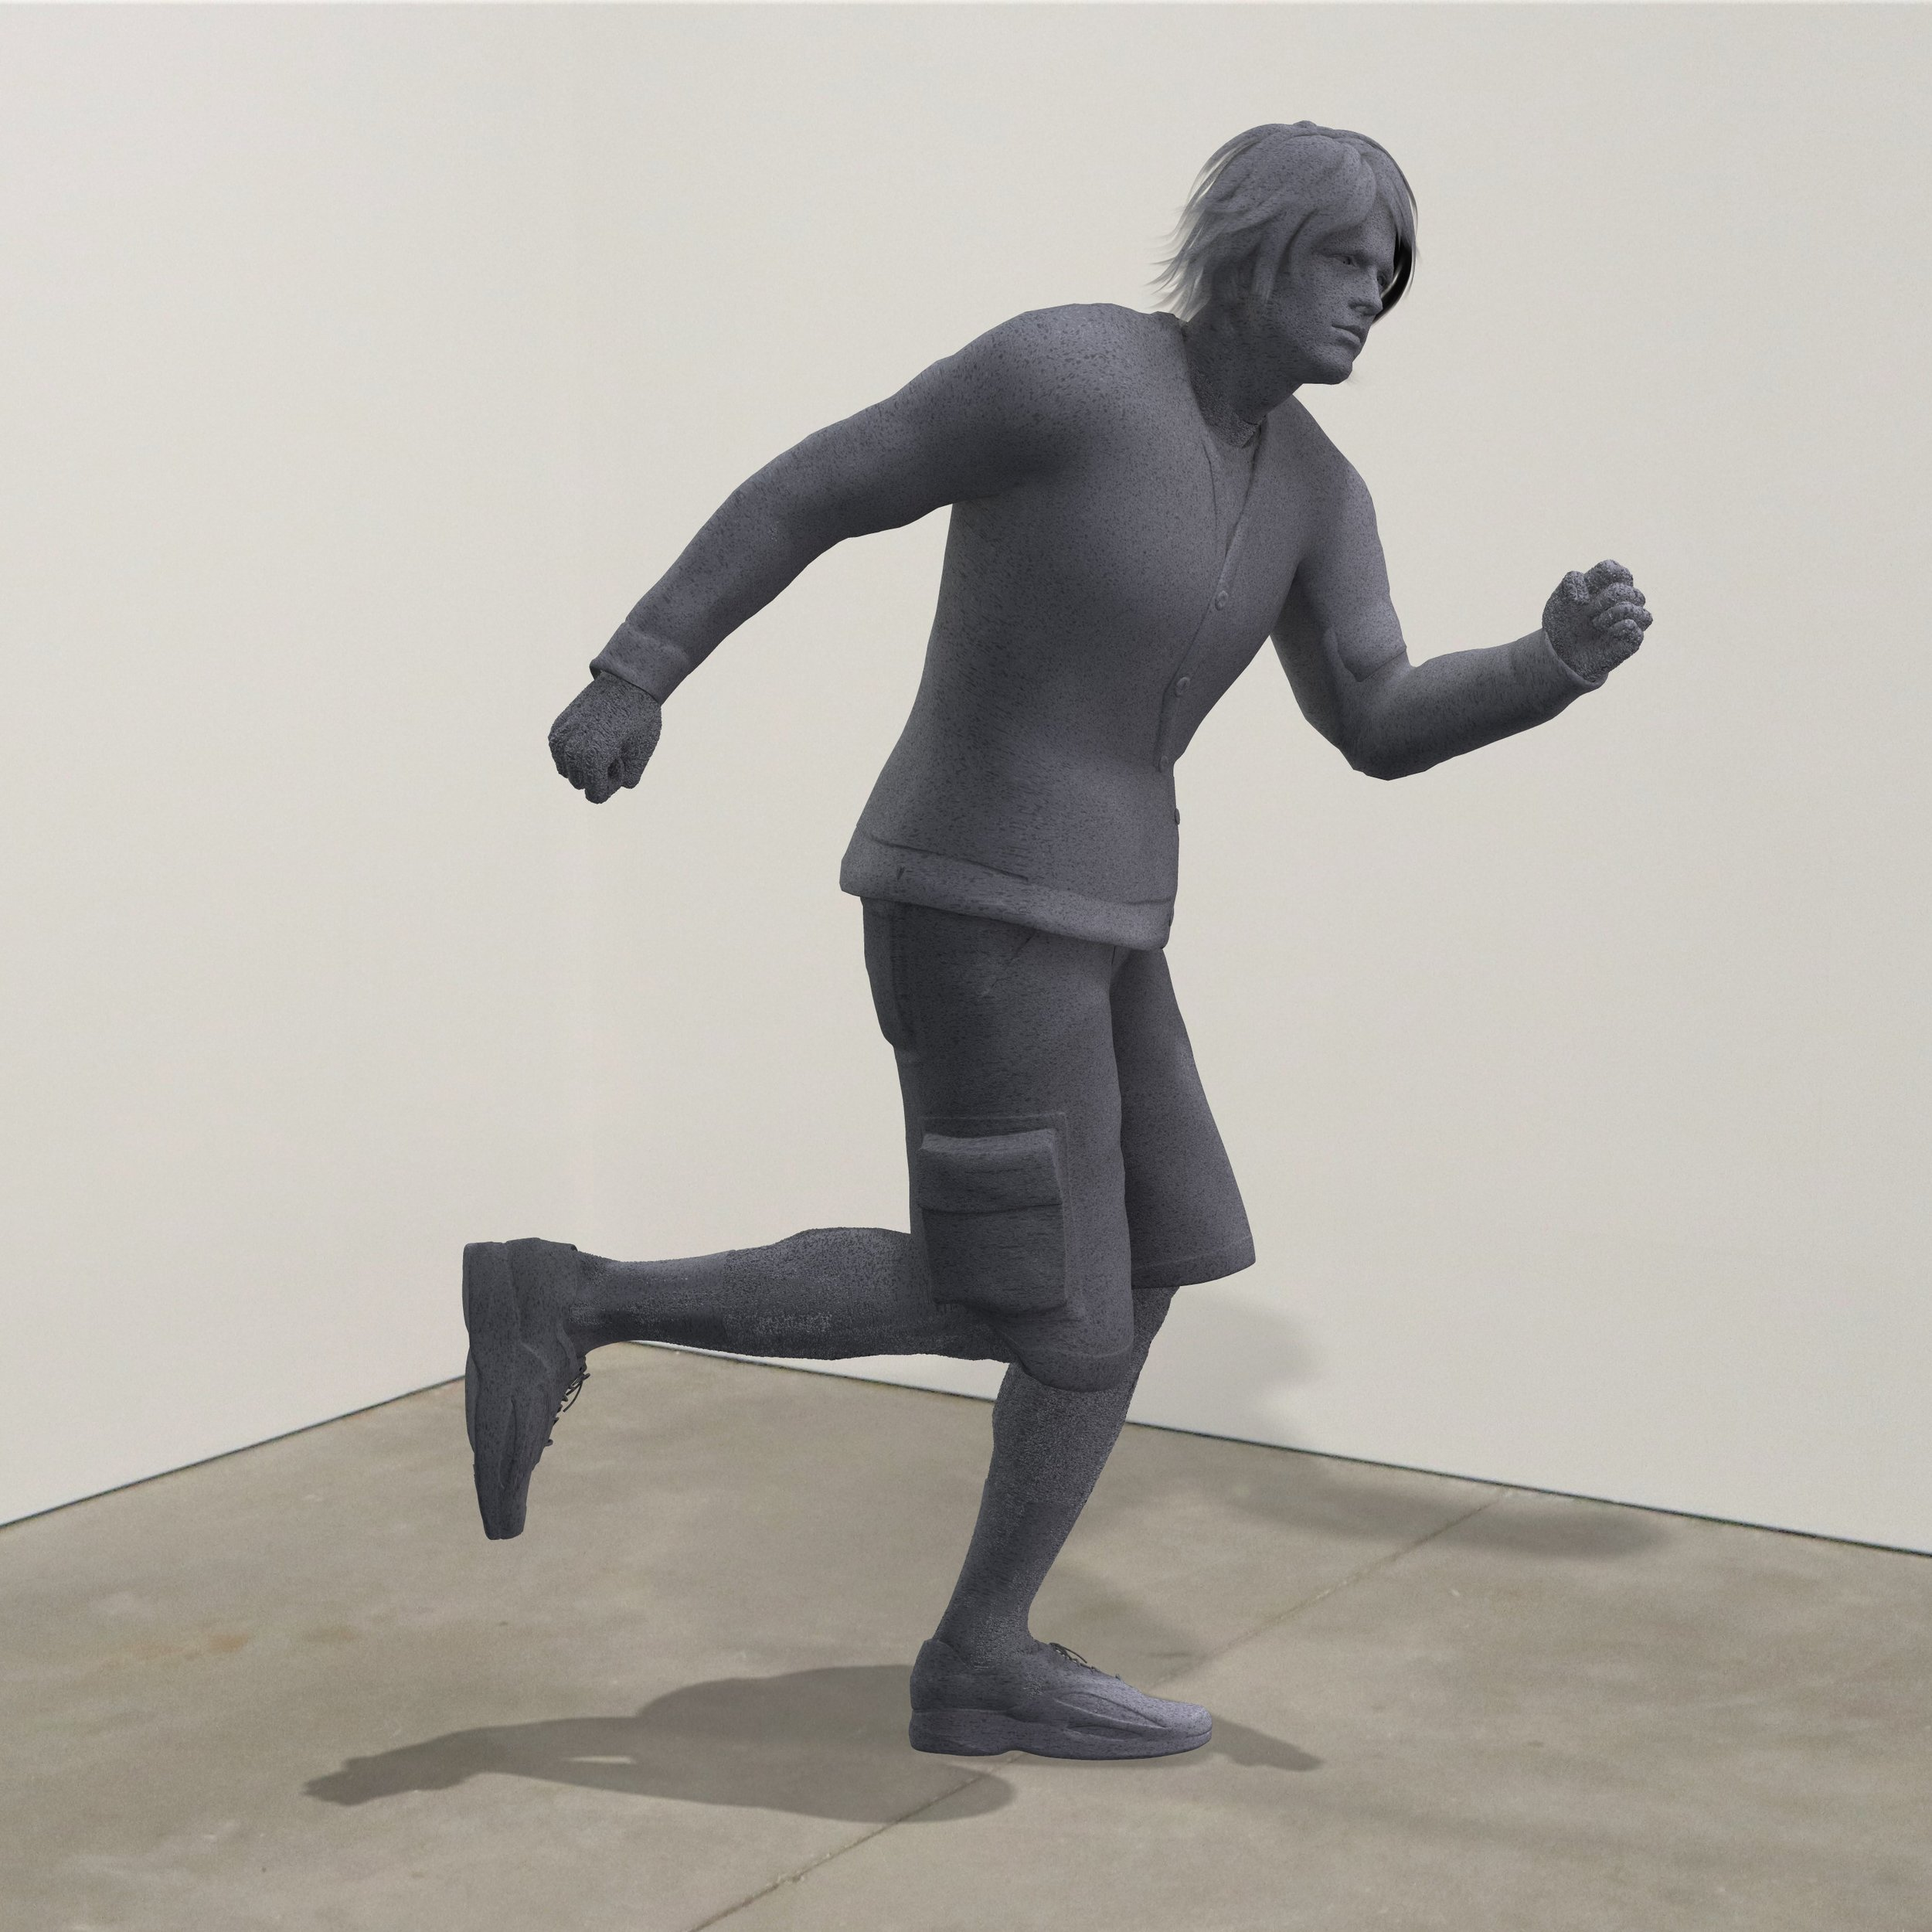 """Running From My Problems,"" granite, Institute of Contemporary Art, Boston   2018  JPG  During an installation at the Institute of Contemporary Art in Boston, viewers were invited to imagine themselves as statues in the ICA's permanent collection. Participants were photographed posing as a statue they felt represented themselves, created a name for their fictional statue, and selected a stone from which their statue would be made. Professional and amateur digital artists were commissioned to create renderings of the statues, which were superimposed on photos of the ICA's permanent collection gallery space."